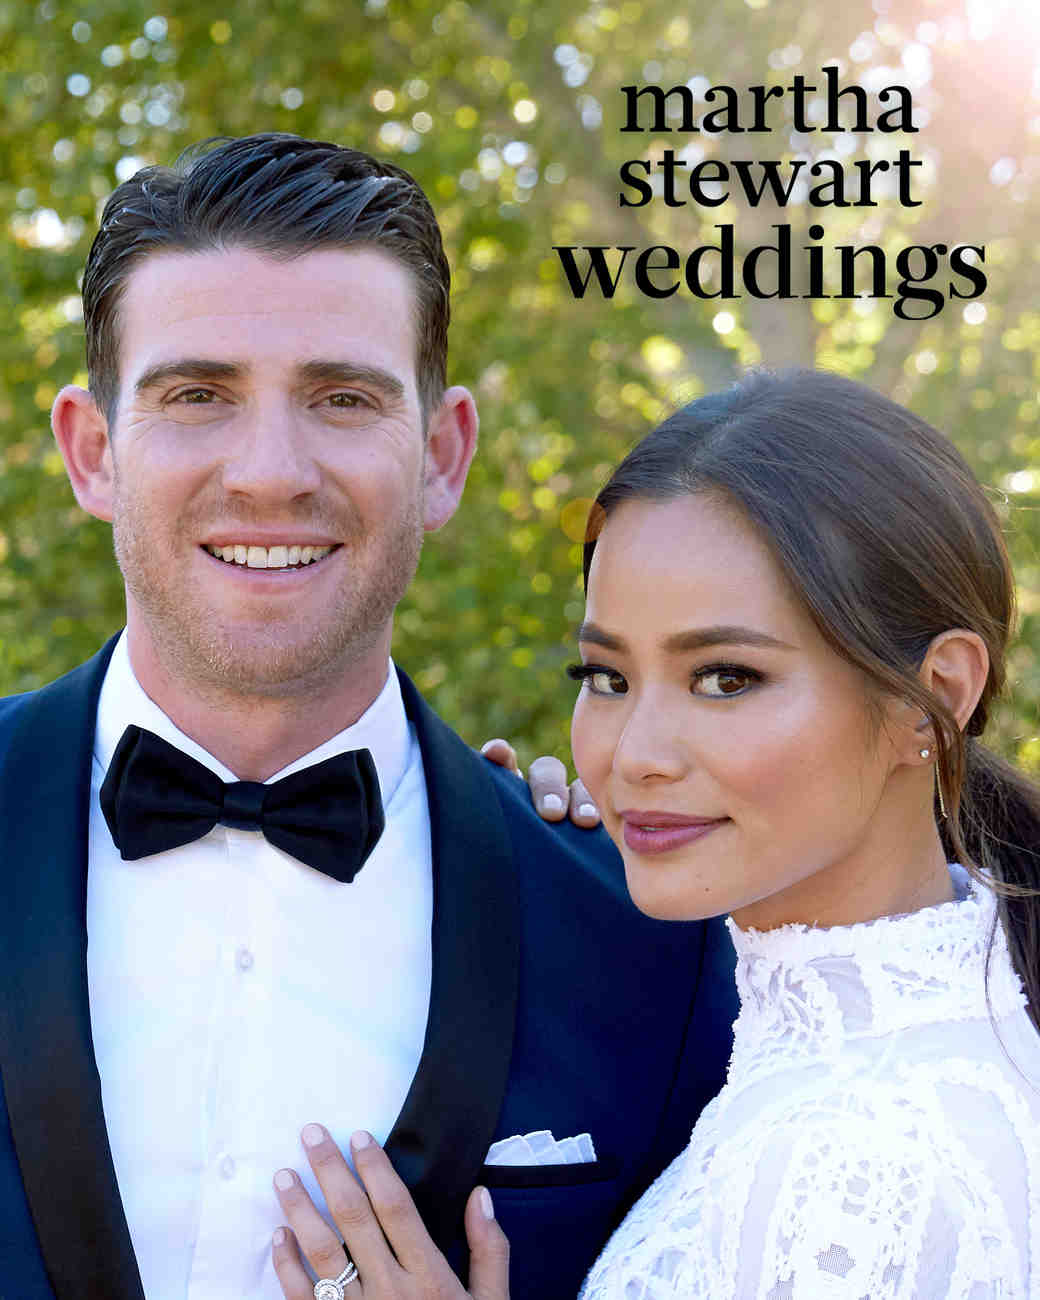 jamie-chung-bryan-greenberg-wedding-photo-d112664.jpg